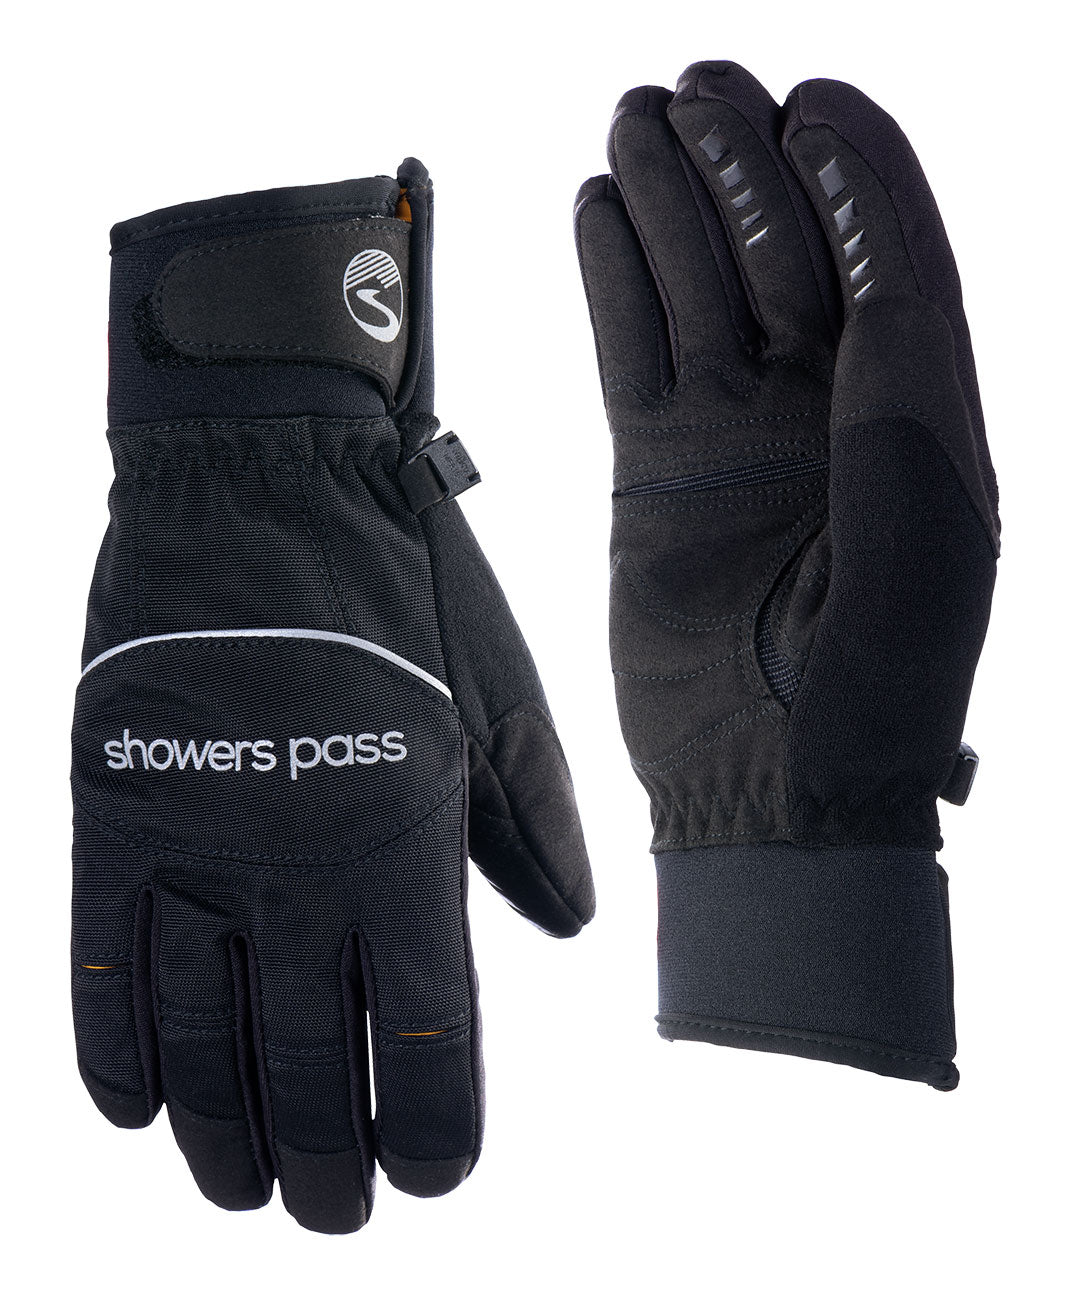 Women's Crosspoint Softshell WP Glove